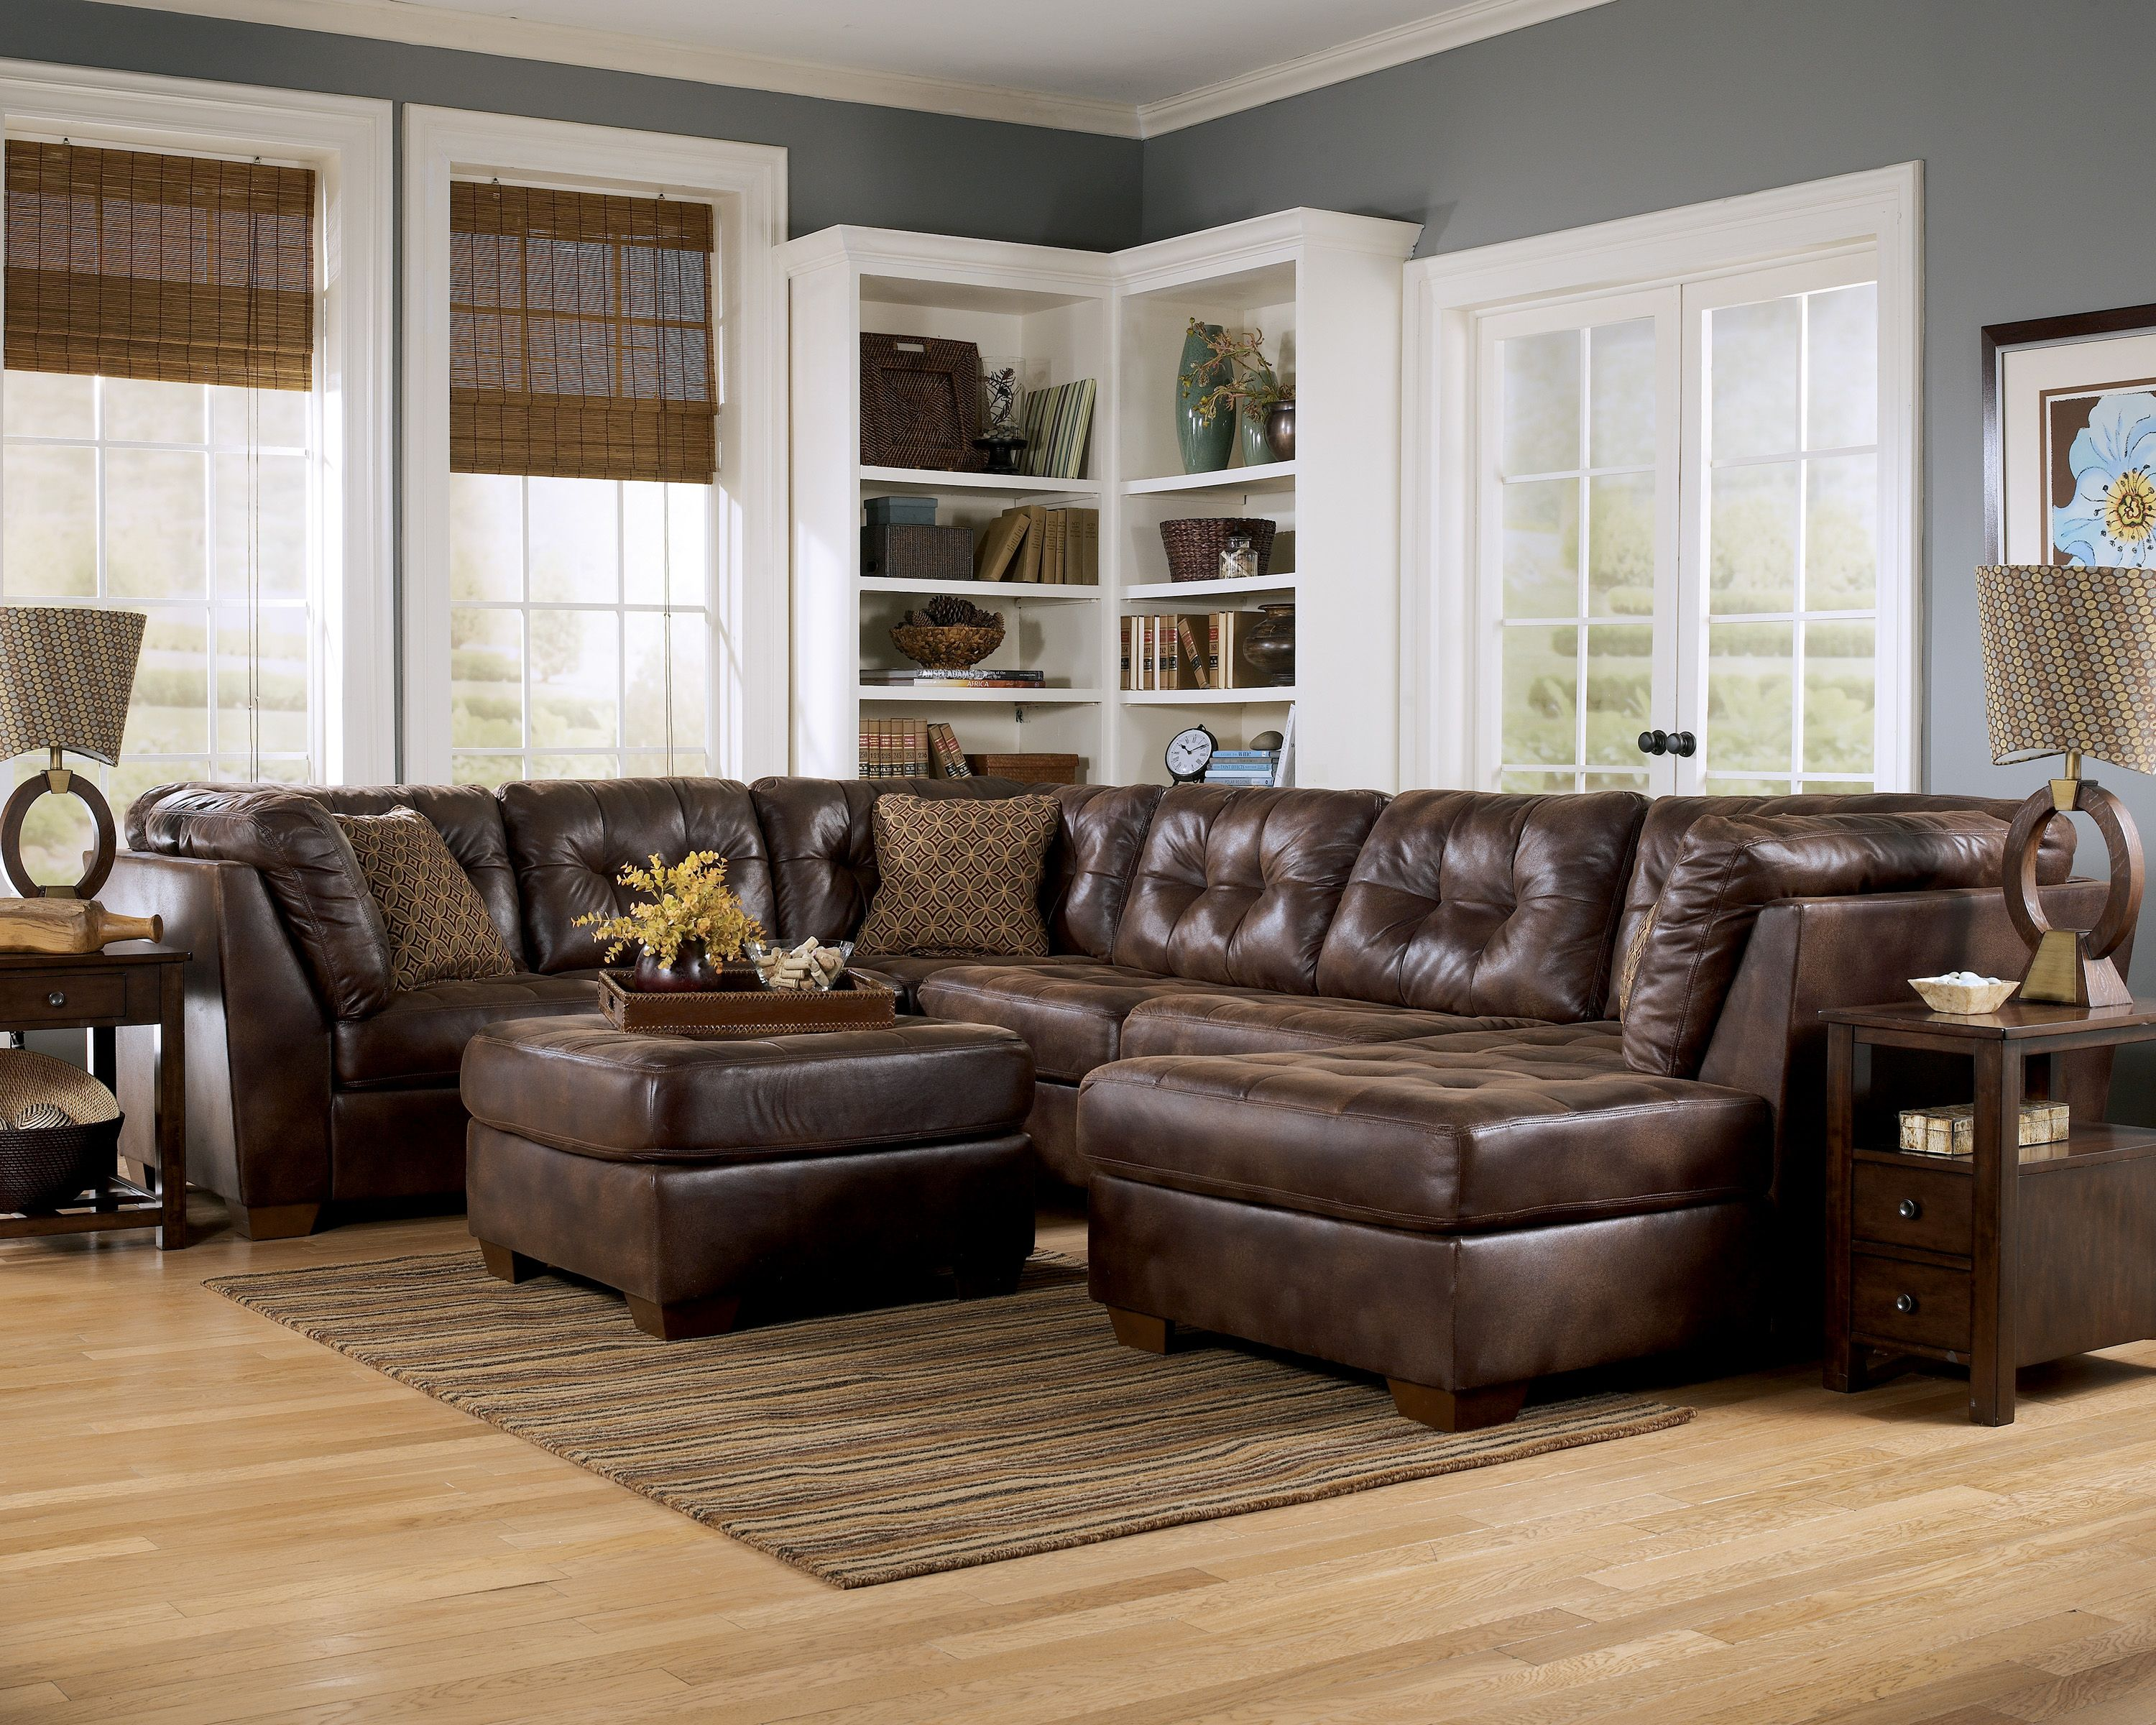 Ashley Faux Leather Sectional Sectionals Sofa Sets Living Room Leather Living Room Paint